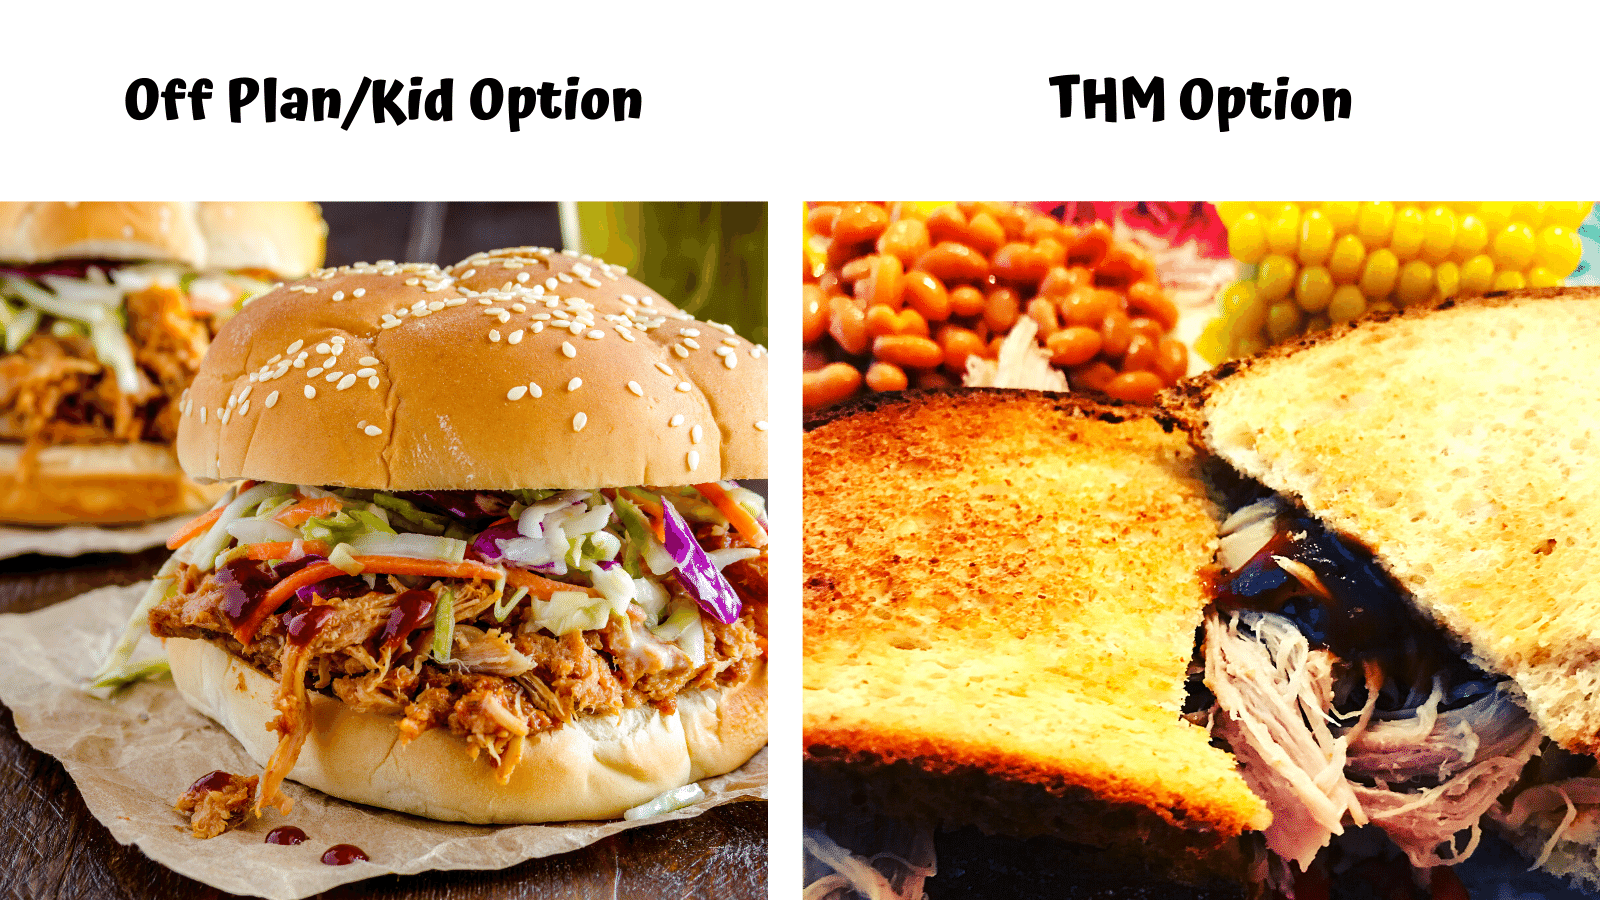 _BBQ 2 ways - THM On Plan & Family option